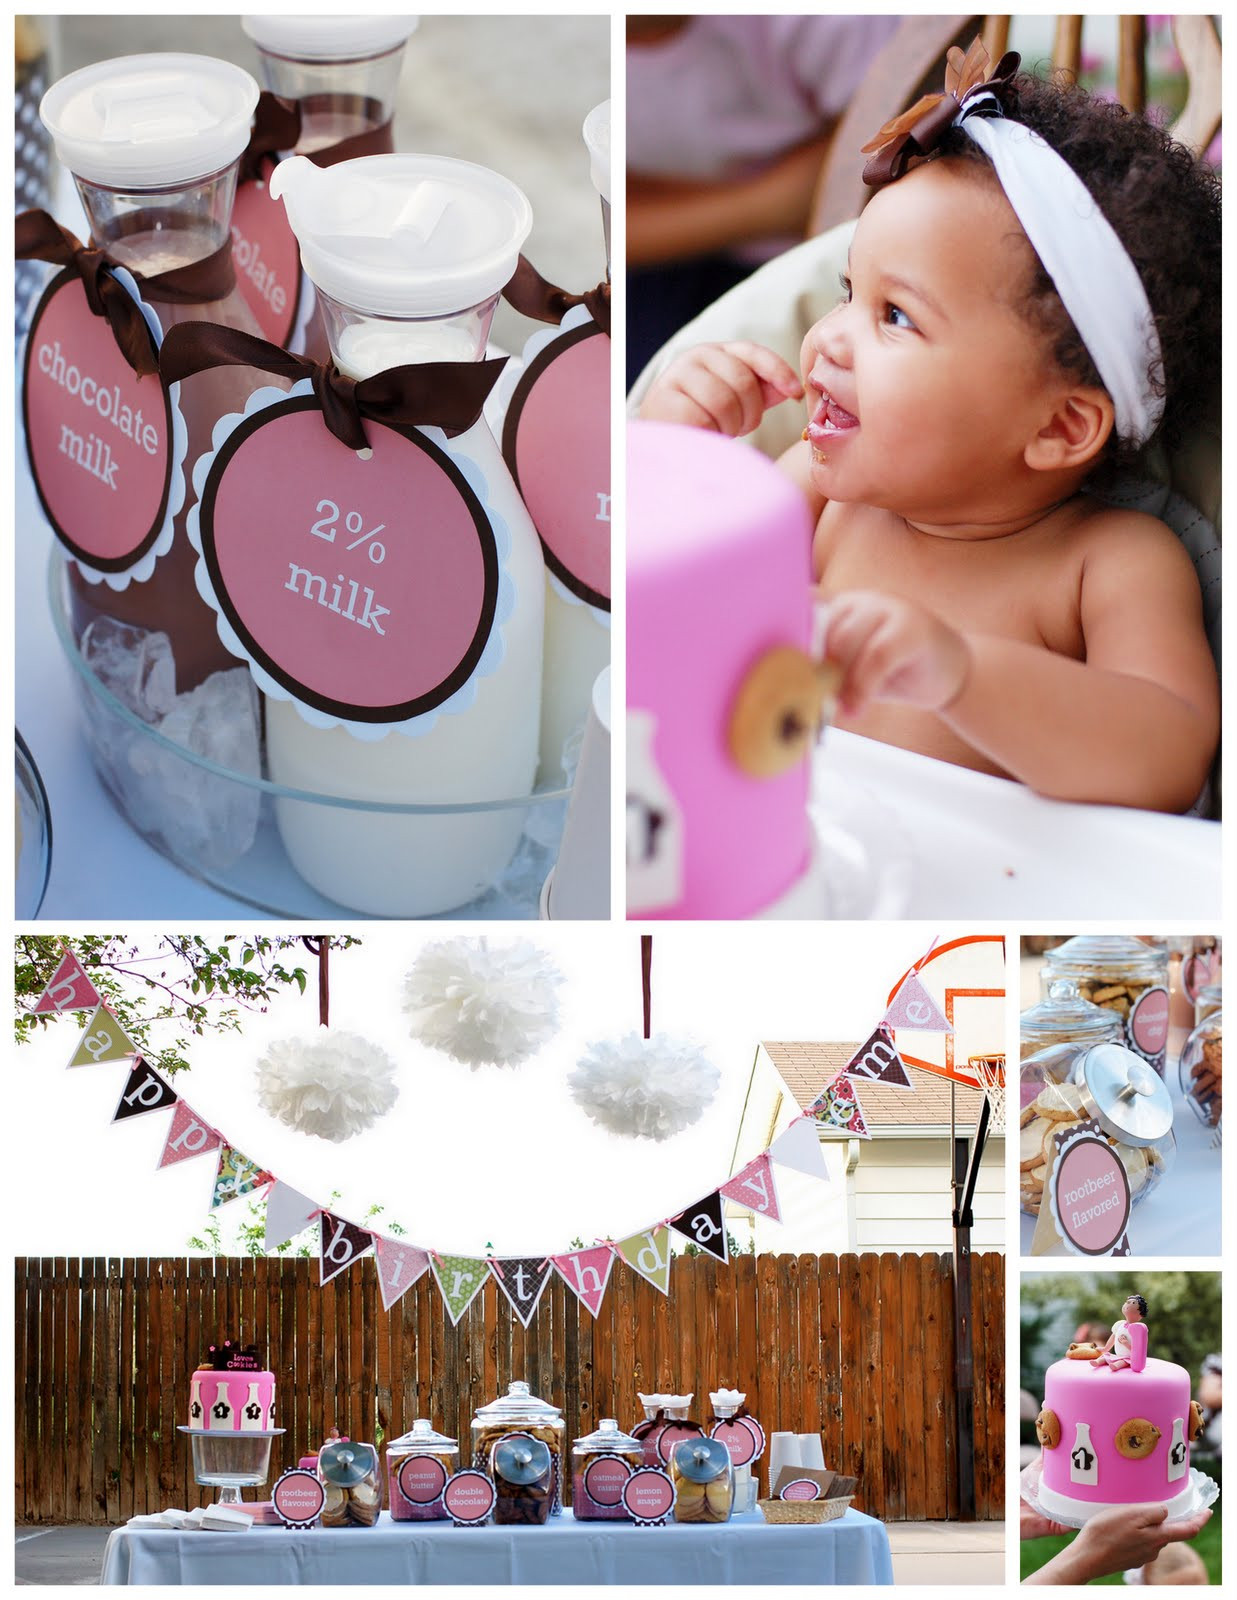 Best ideas about First Birthday Party Themes . Save or Pin Kara s Party Ideas Cookies and Milk 1st Birthday Now.